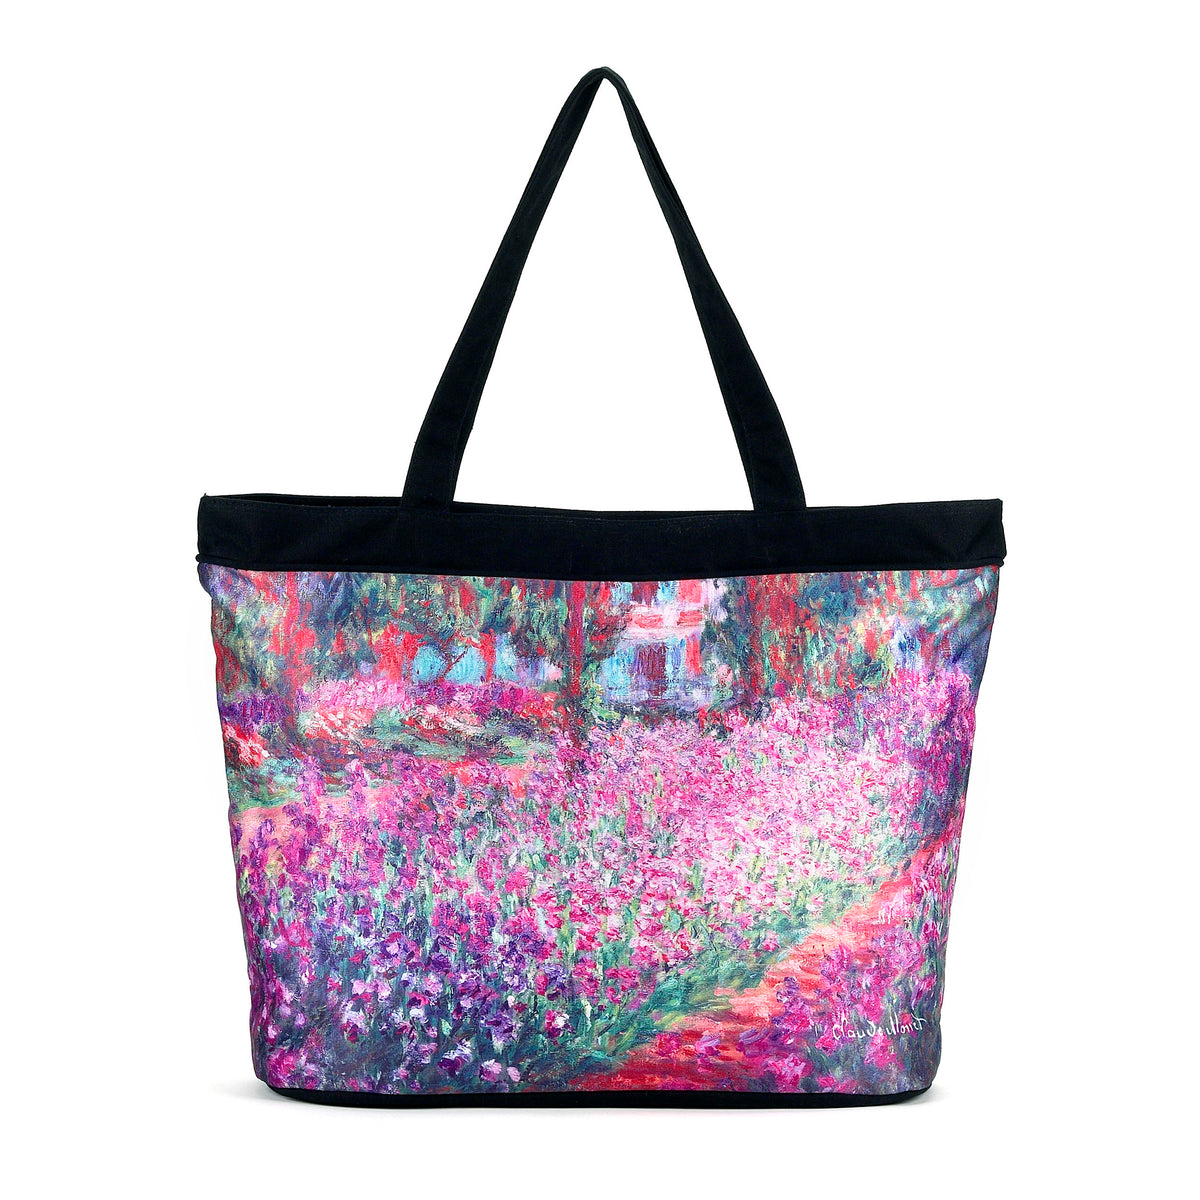 Tote Bag- Monet's Garden | Getty Store